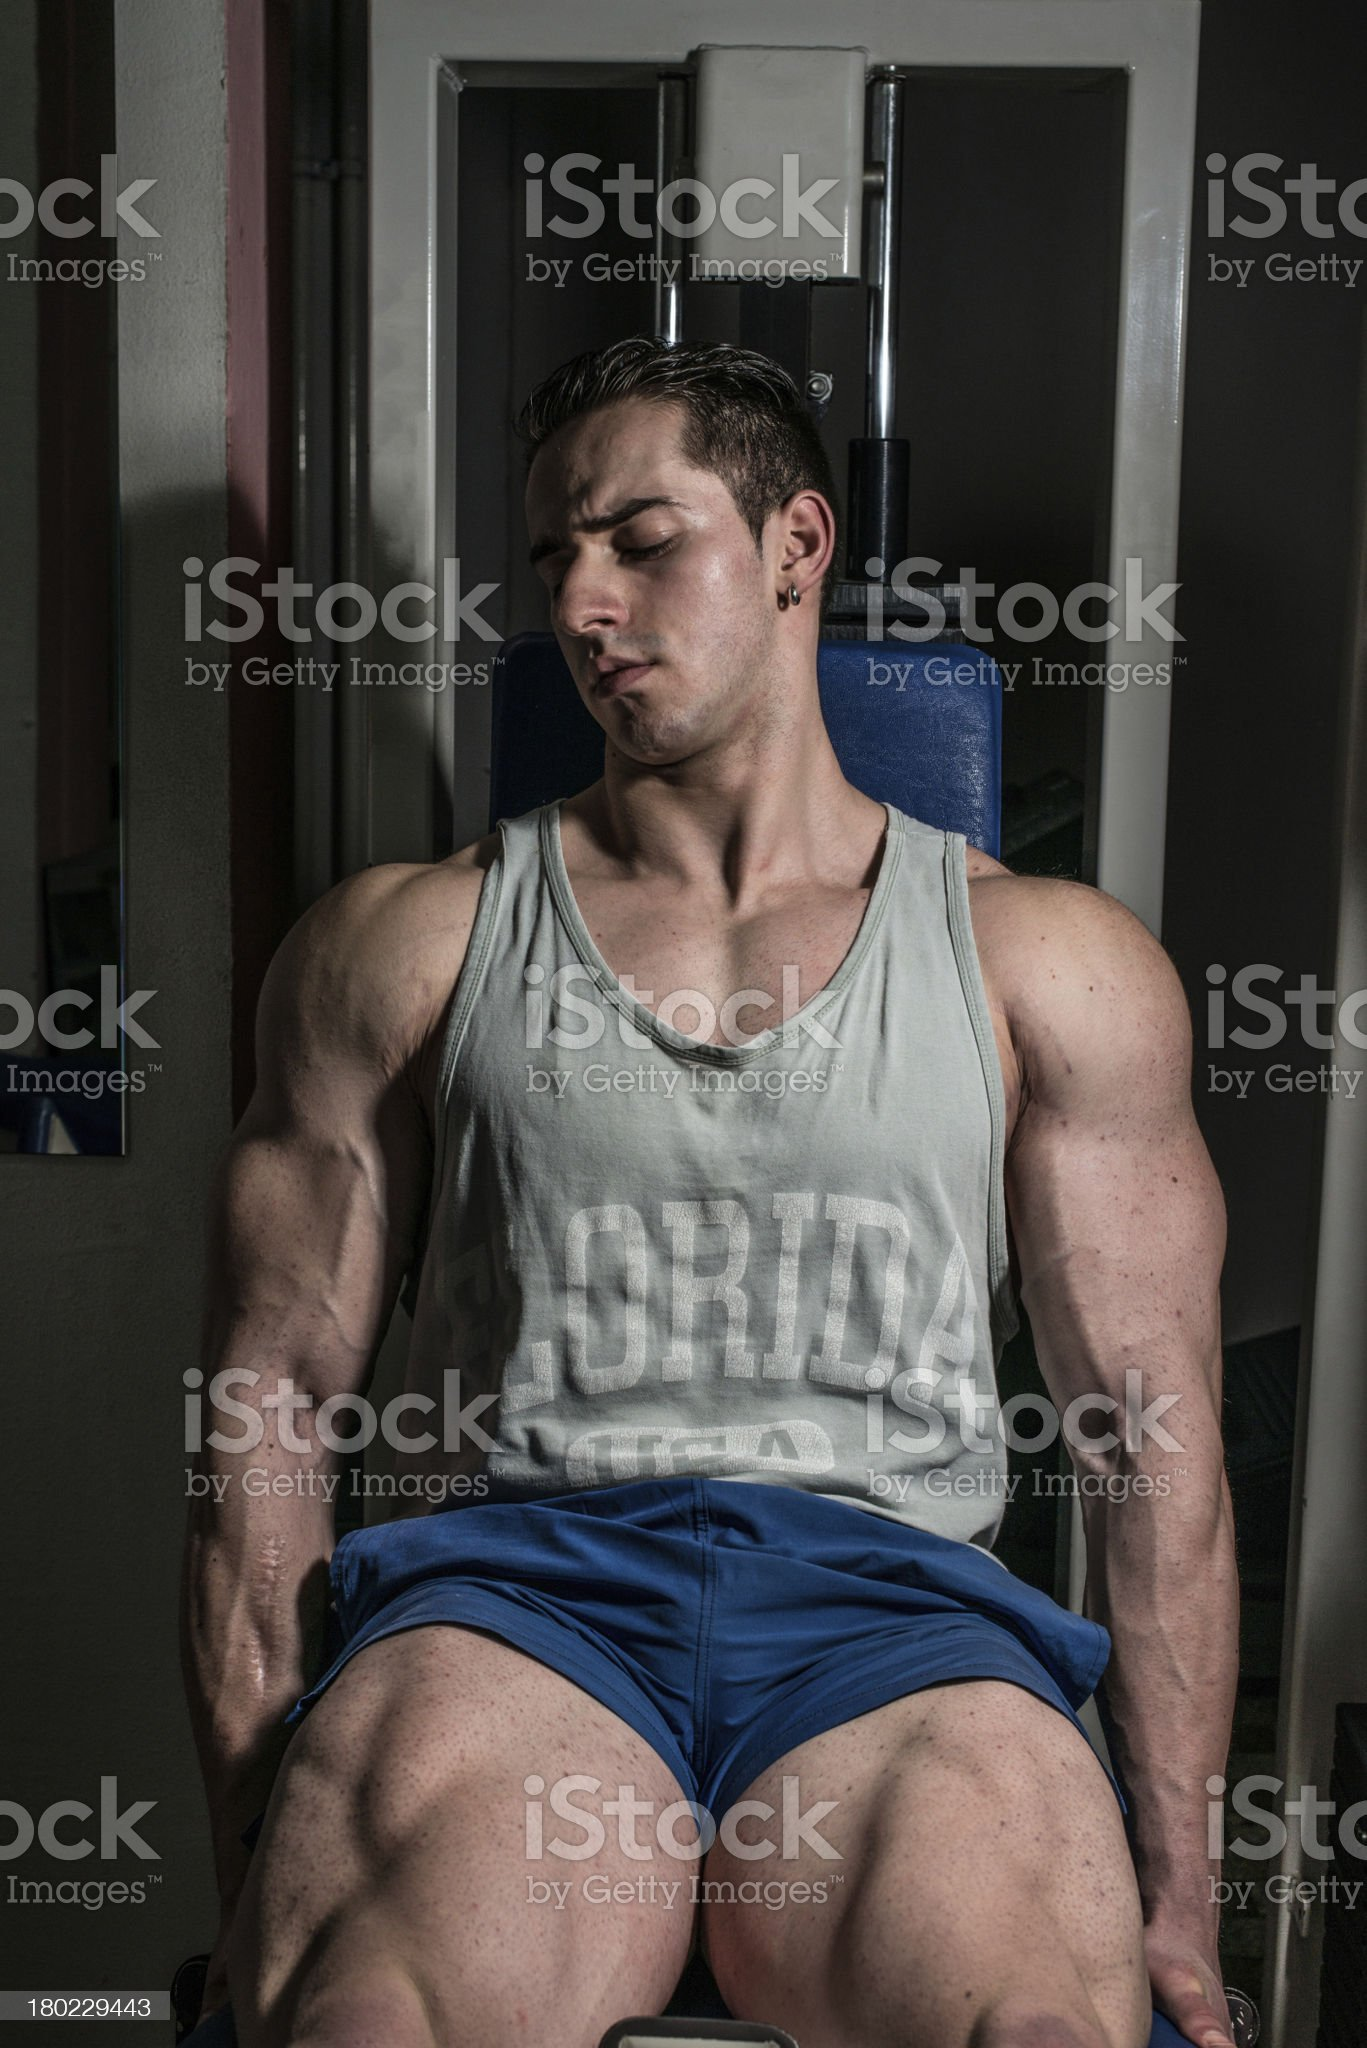 bodybuilder doing heavy weight exercise for legs royalty-free stock photo